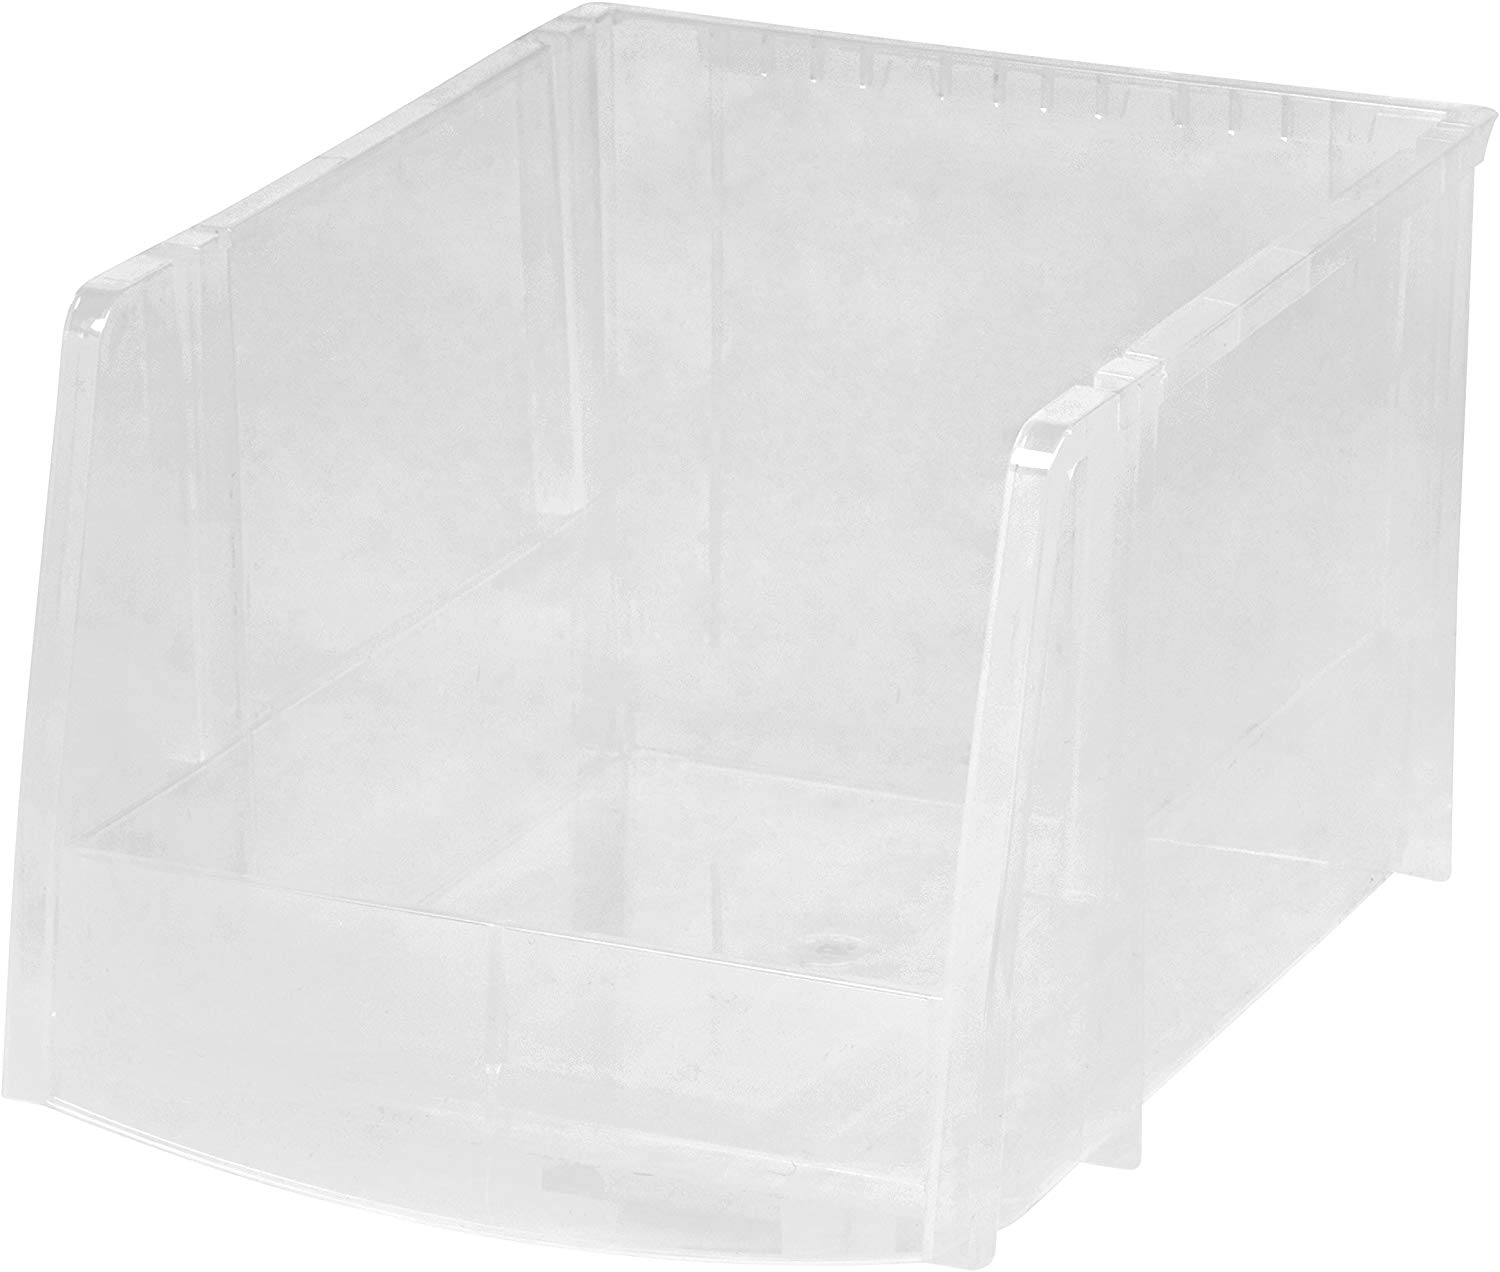 8 Inch x 10 Inch IP Clear Stacking Bin